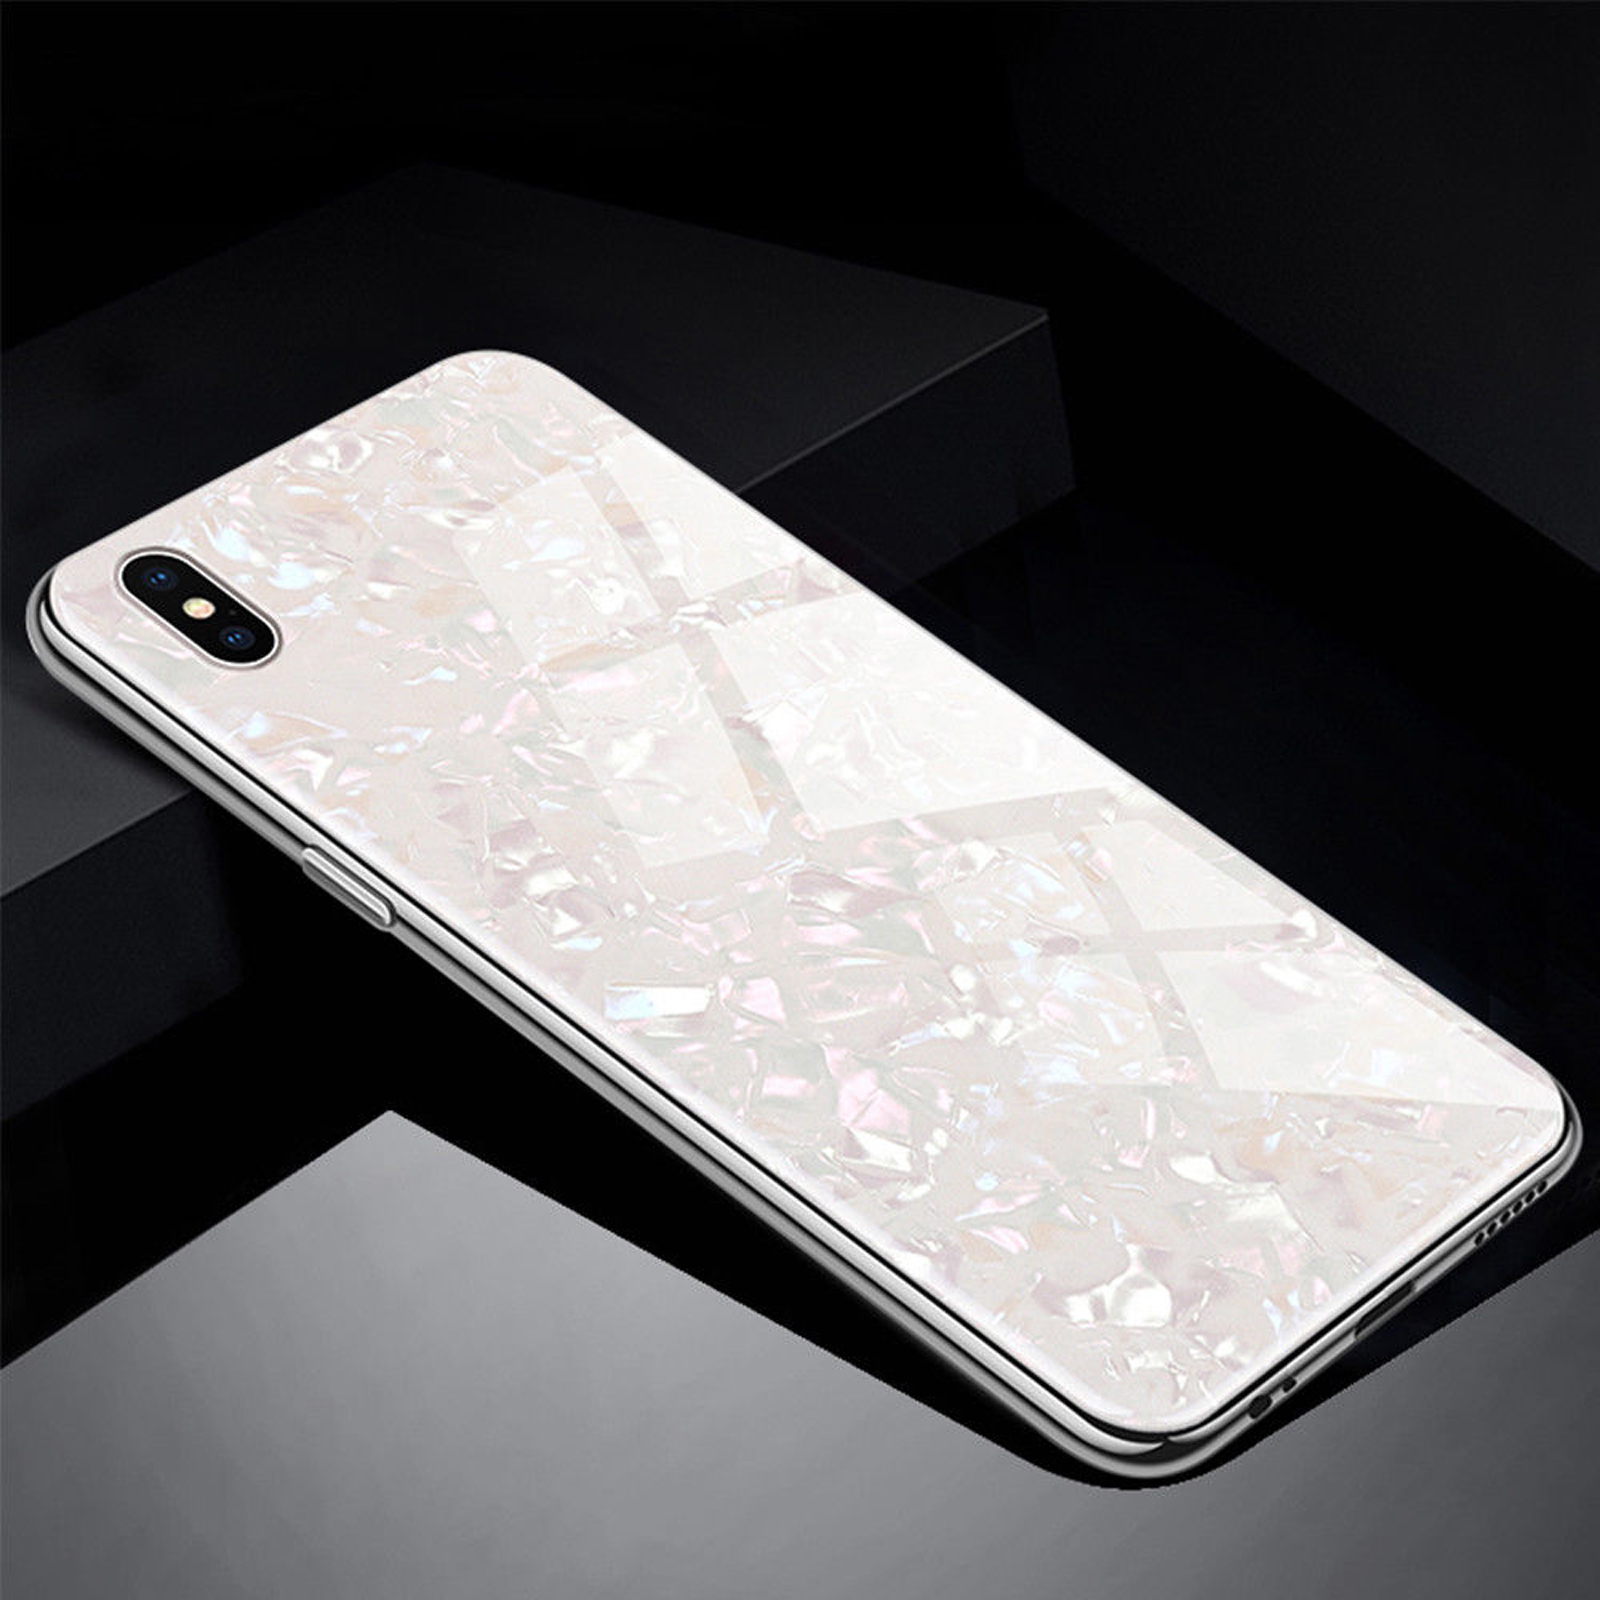 Luxury-Marble-Tempered-Glass-Case-Cover-For-Apple-iPhone-X-XS-XR-Max-10-8-7-6s-6